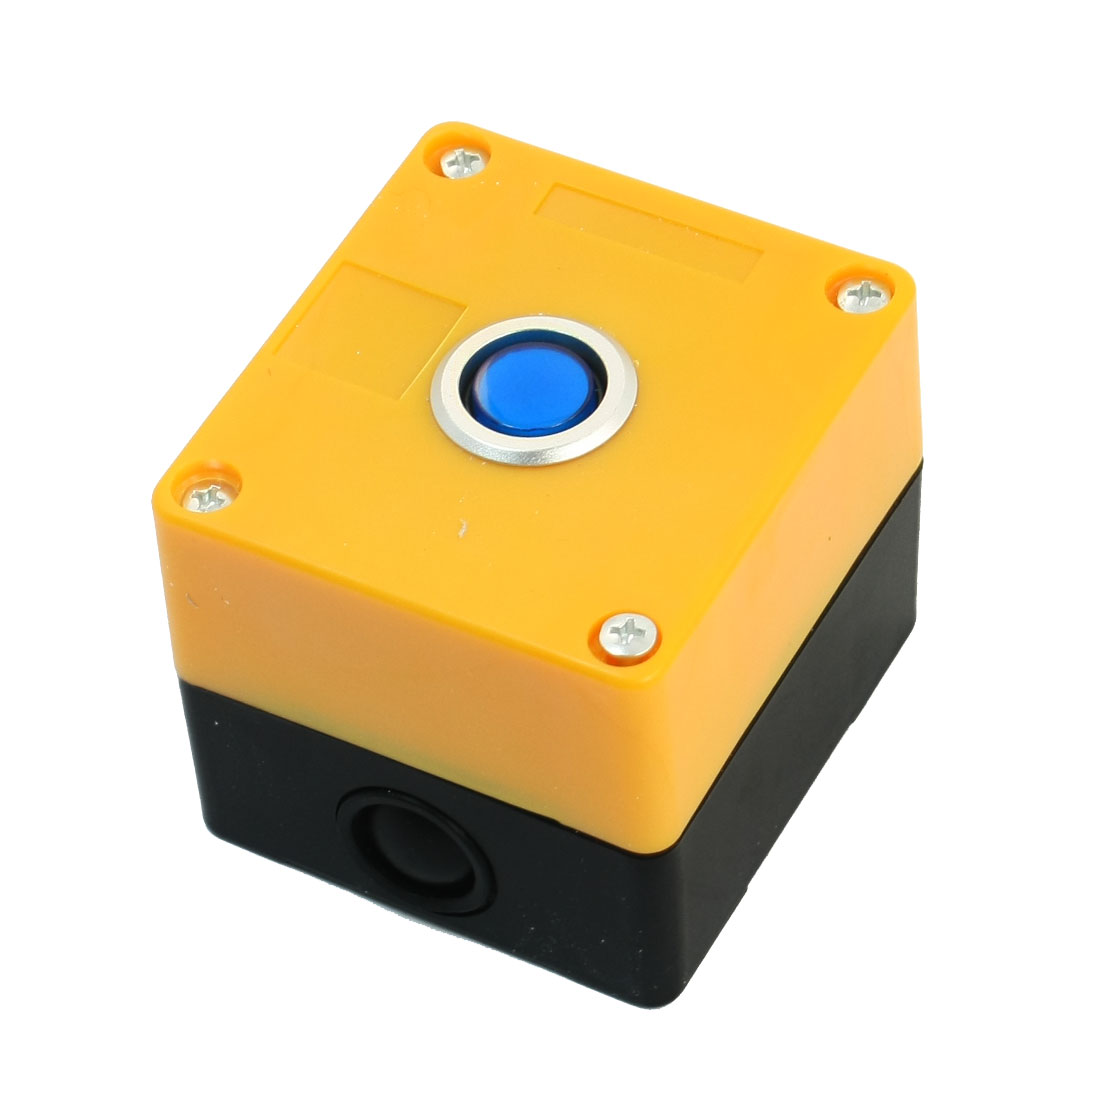 AC220V 5A SPDT 1NO 1NC 5-Pin Momentary Blue Pilot Lamp Rectangle Yellow Plastic Case Push Button Control Station Box